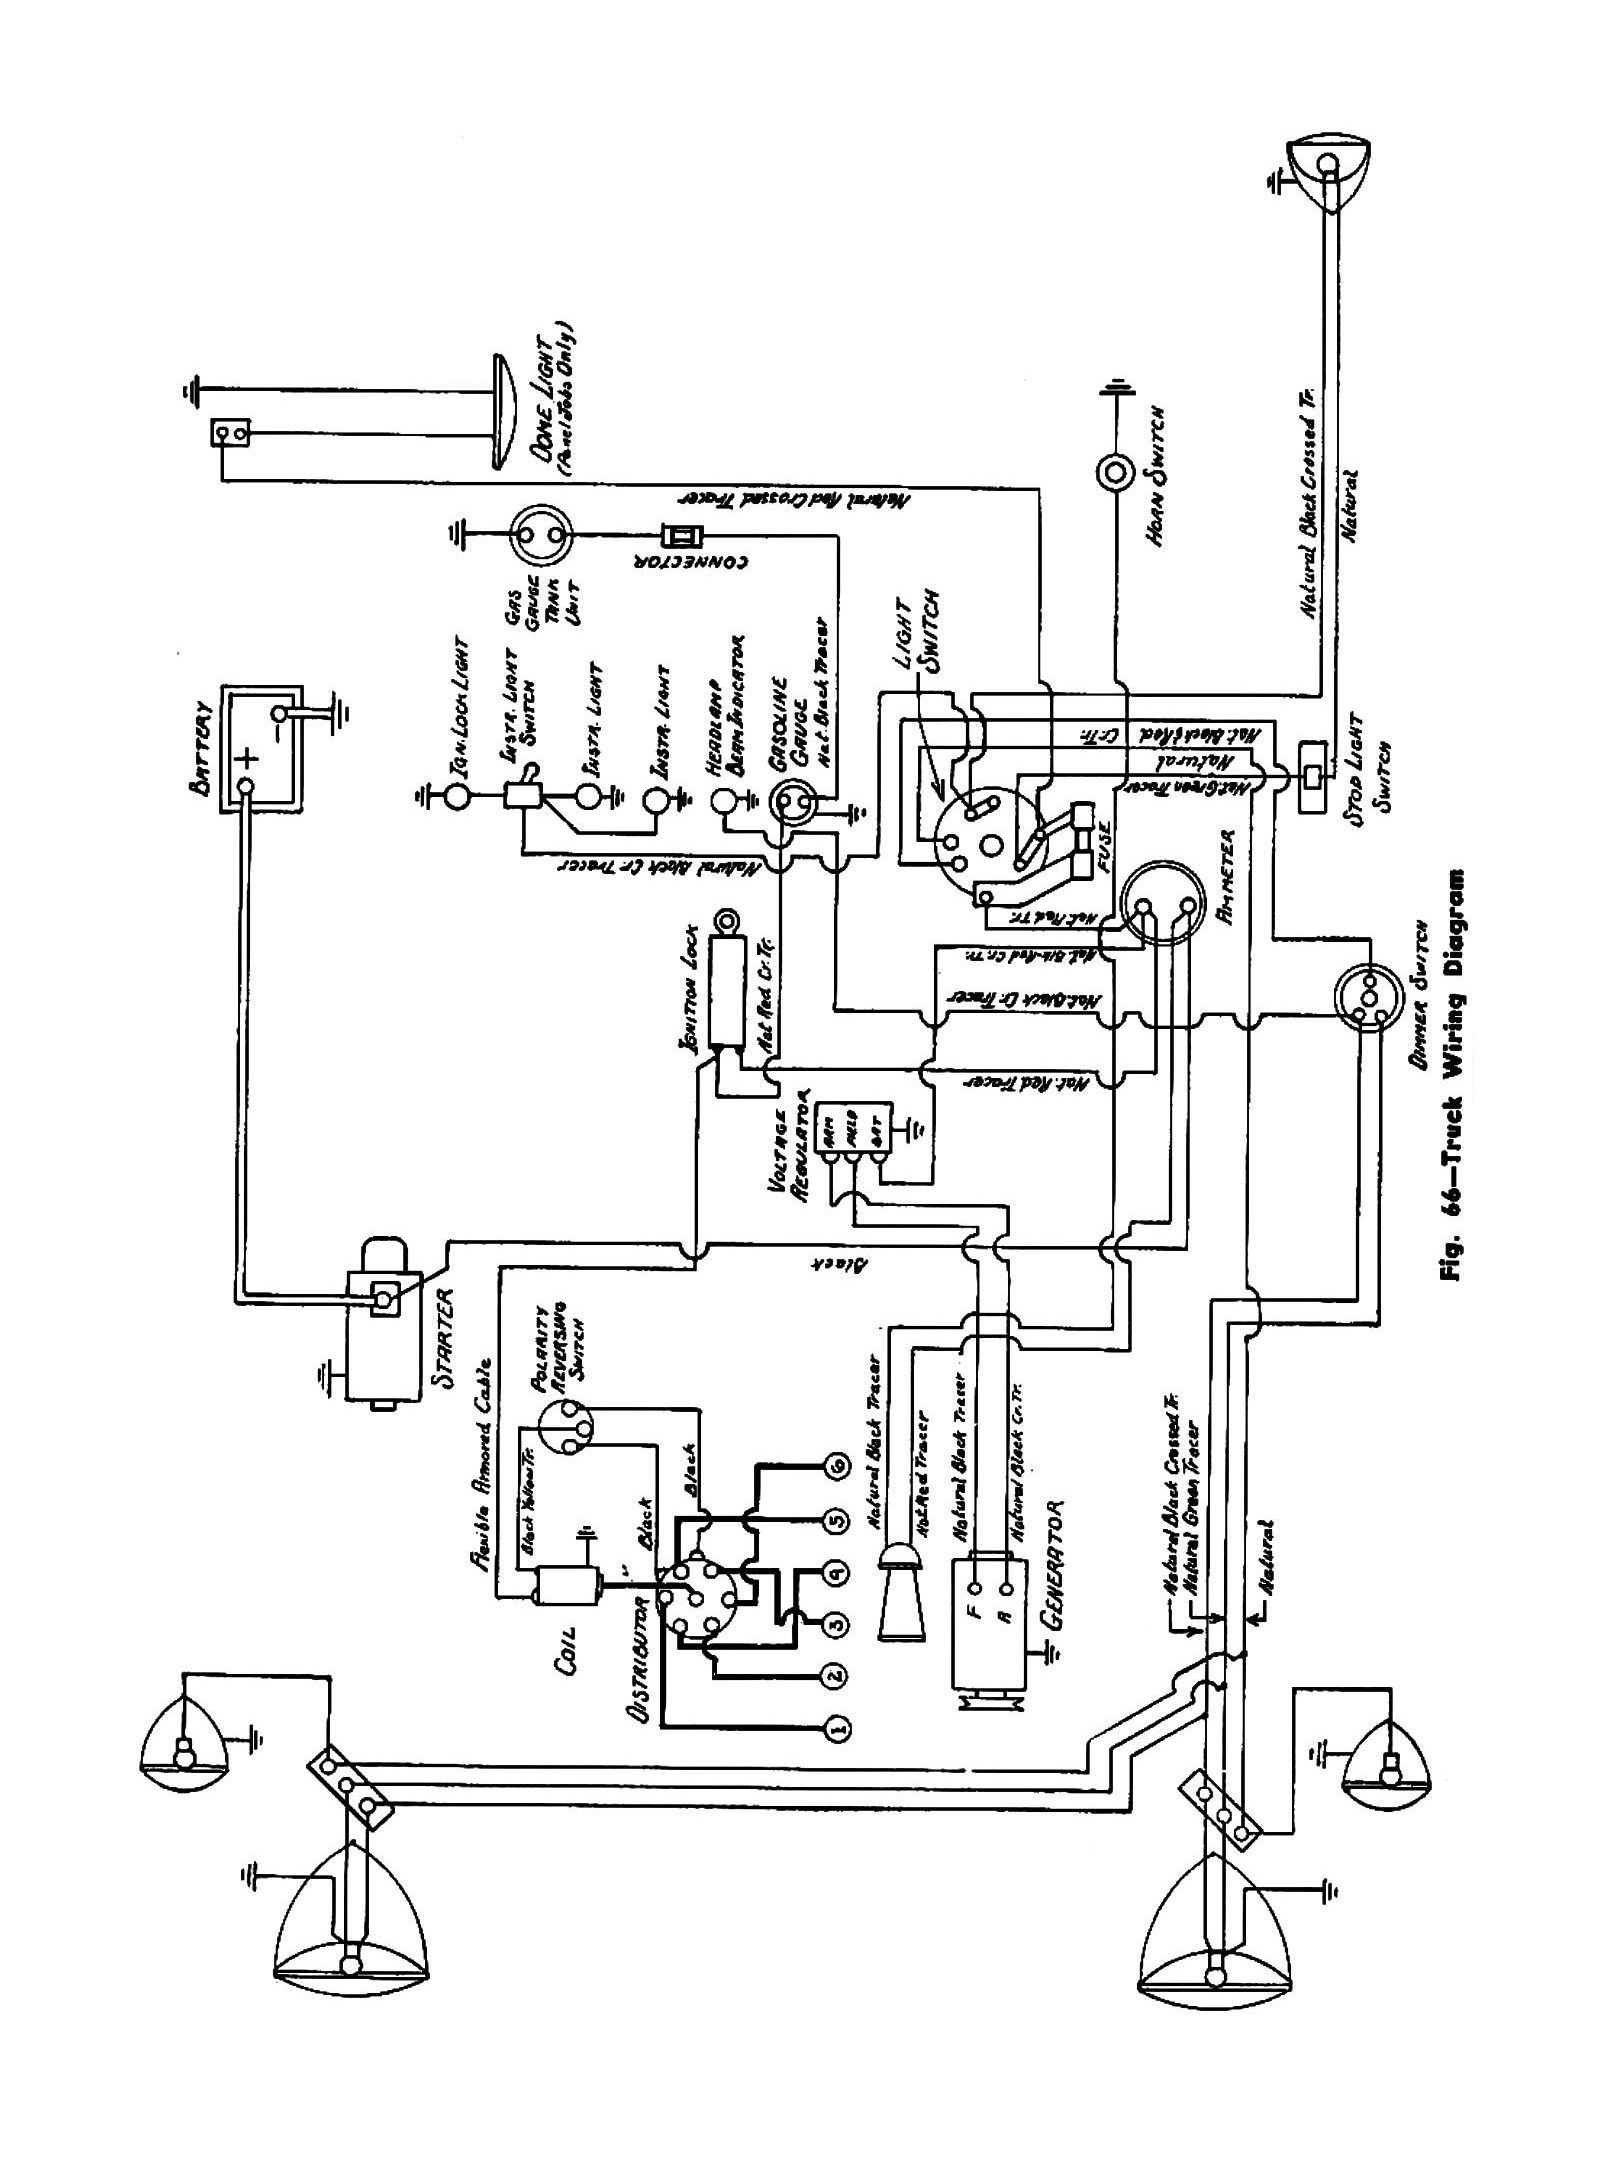 hight resolution of chevy wiring diagrams1941 chevy pickup wiring diagram 3